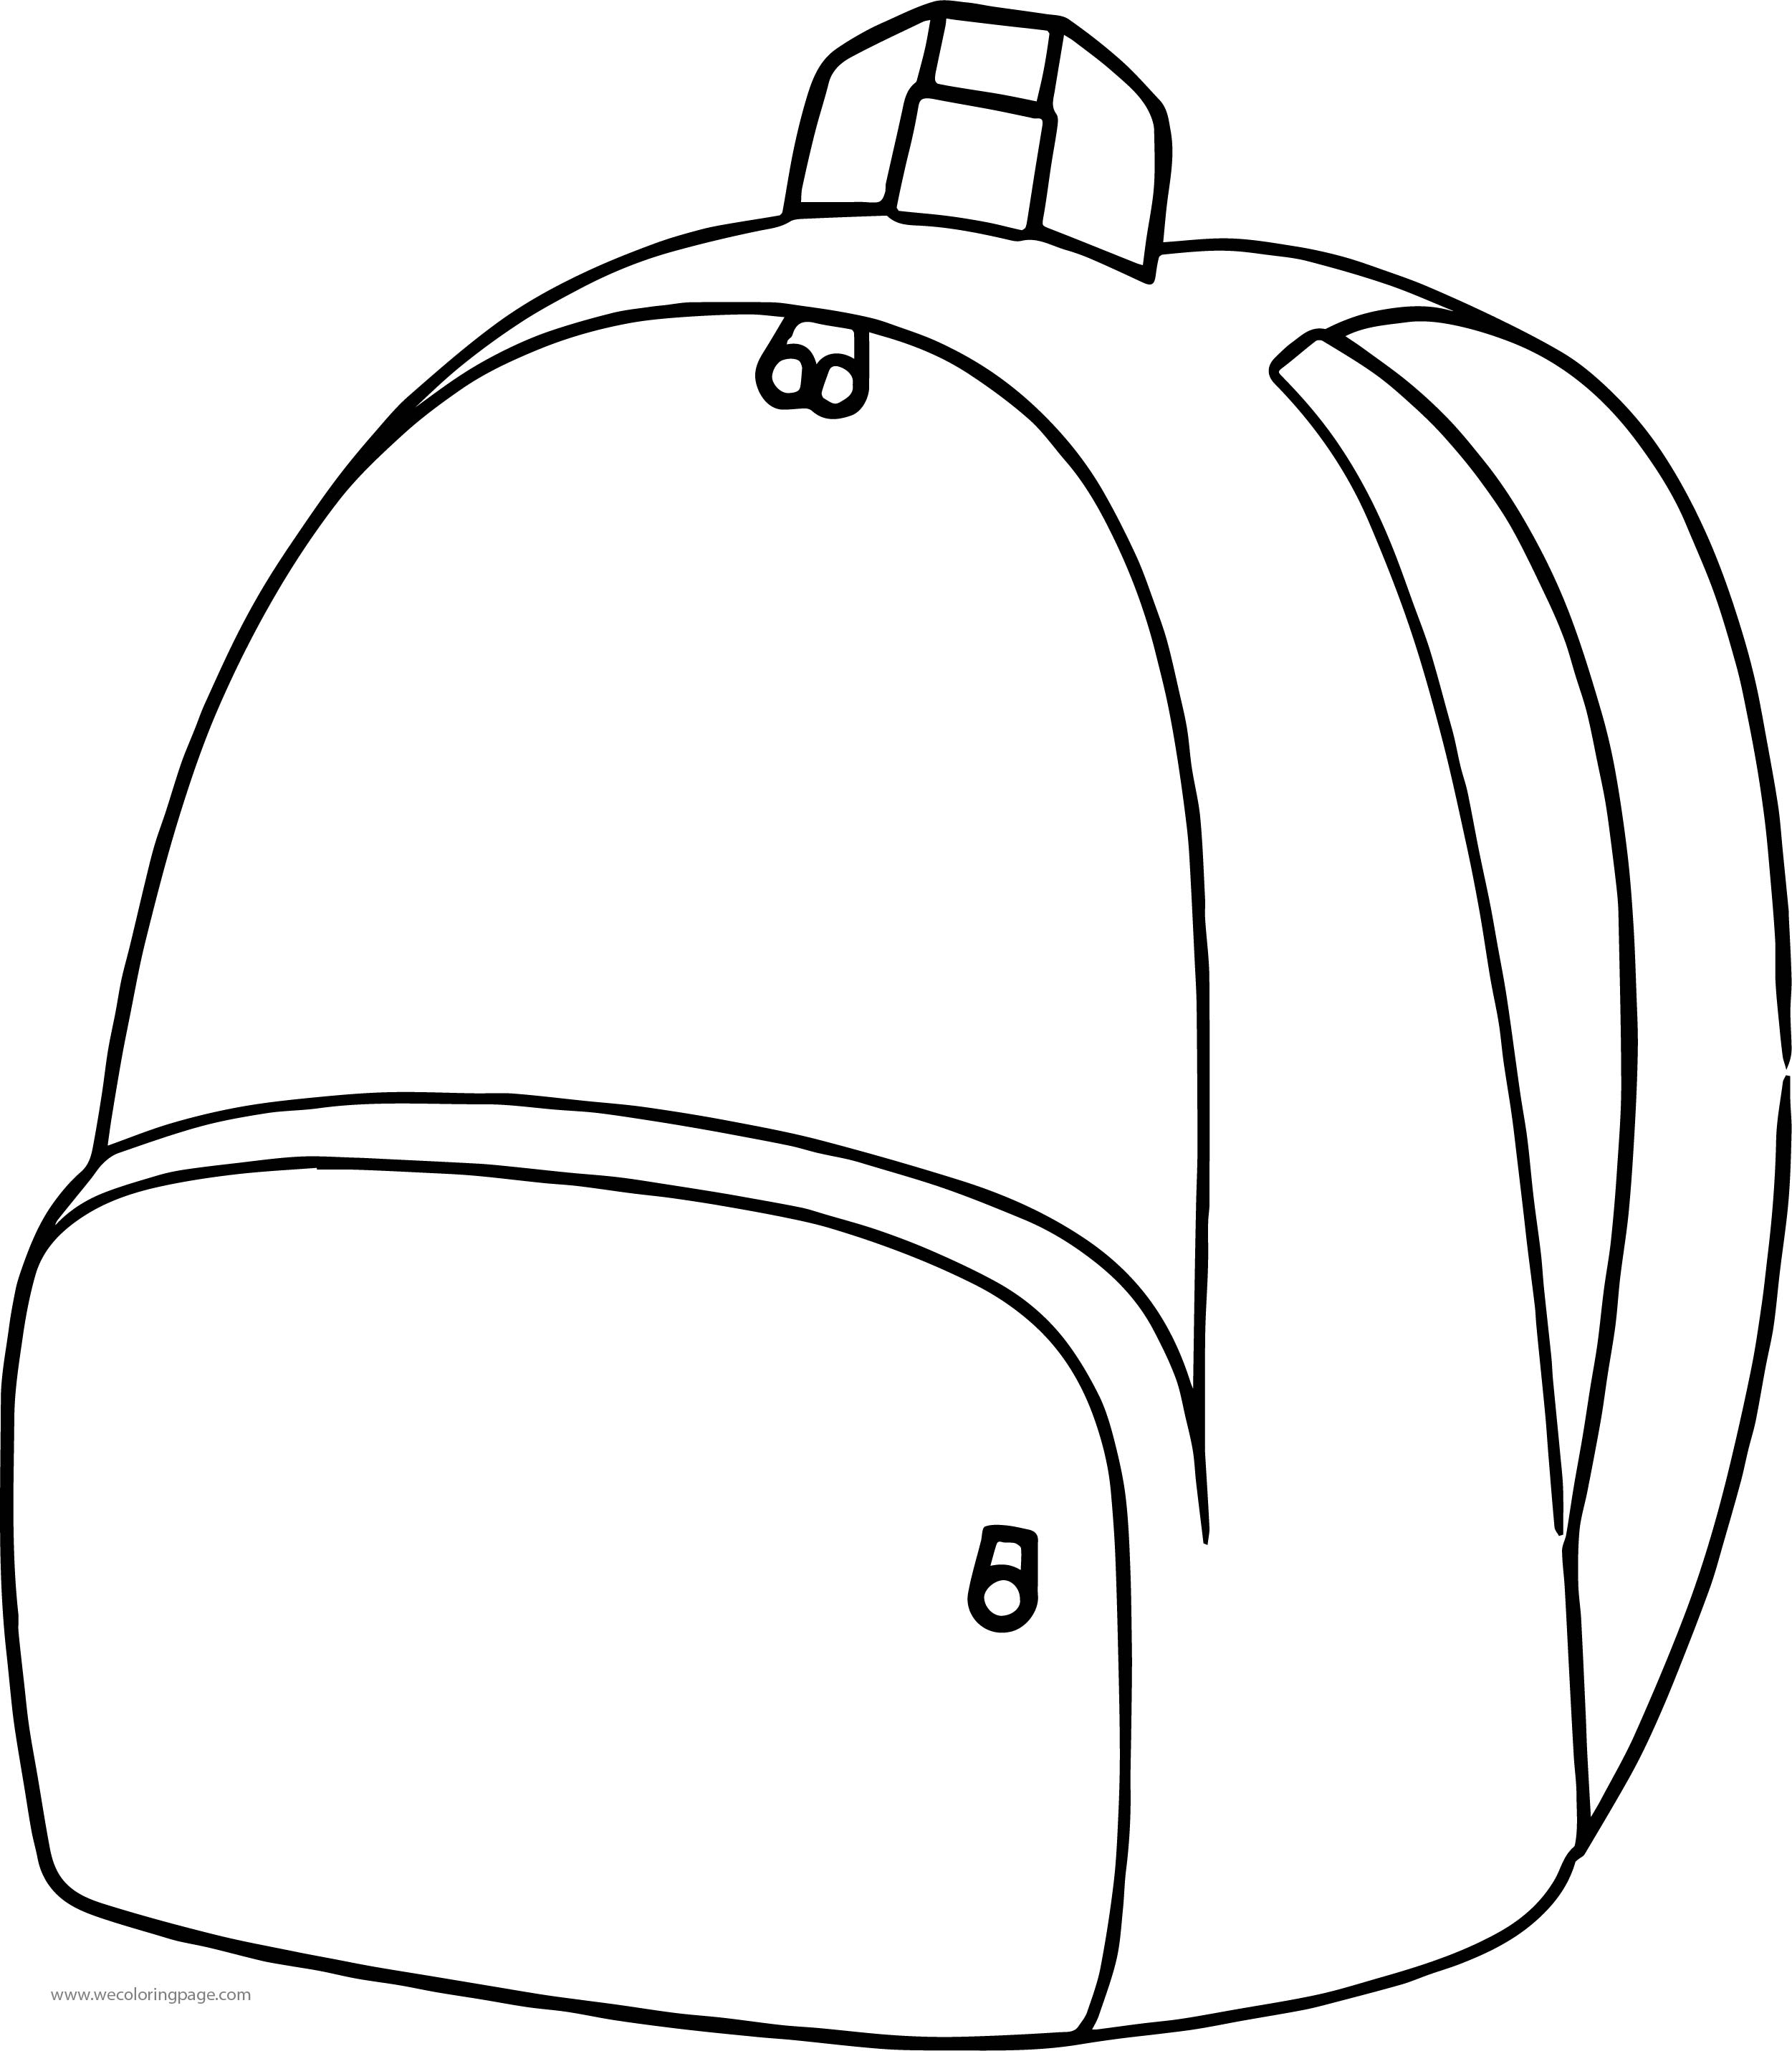 Is School Bag Coloring Page